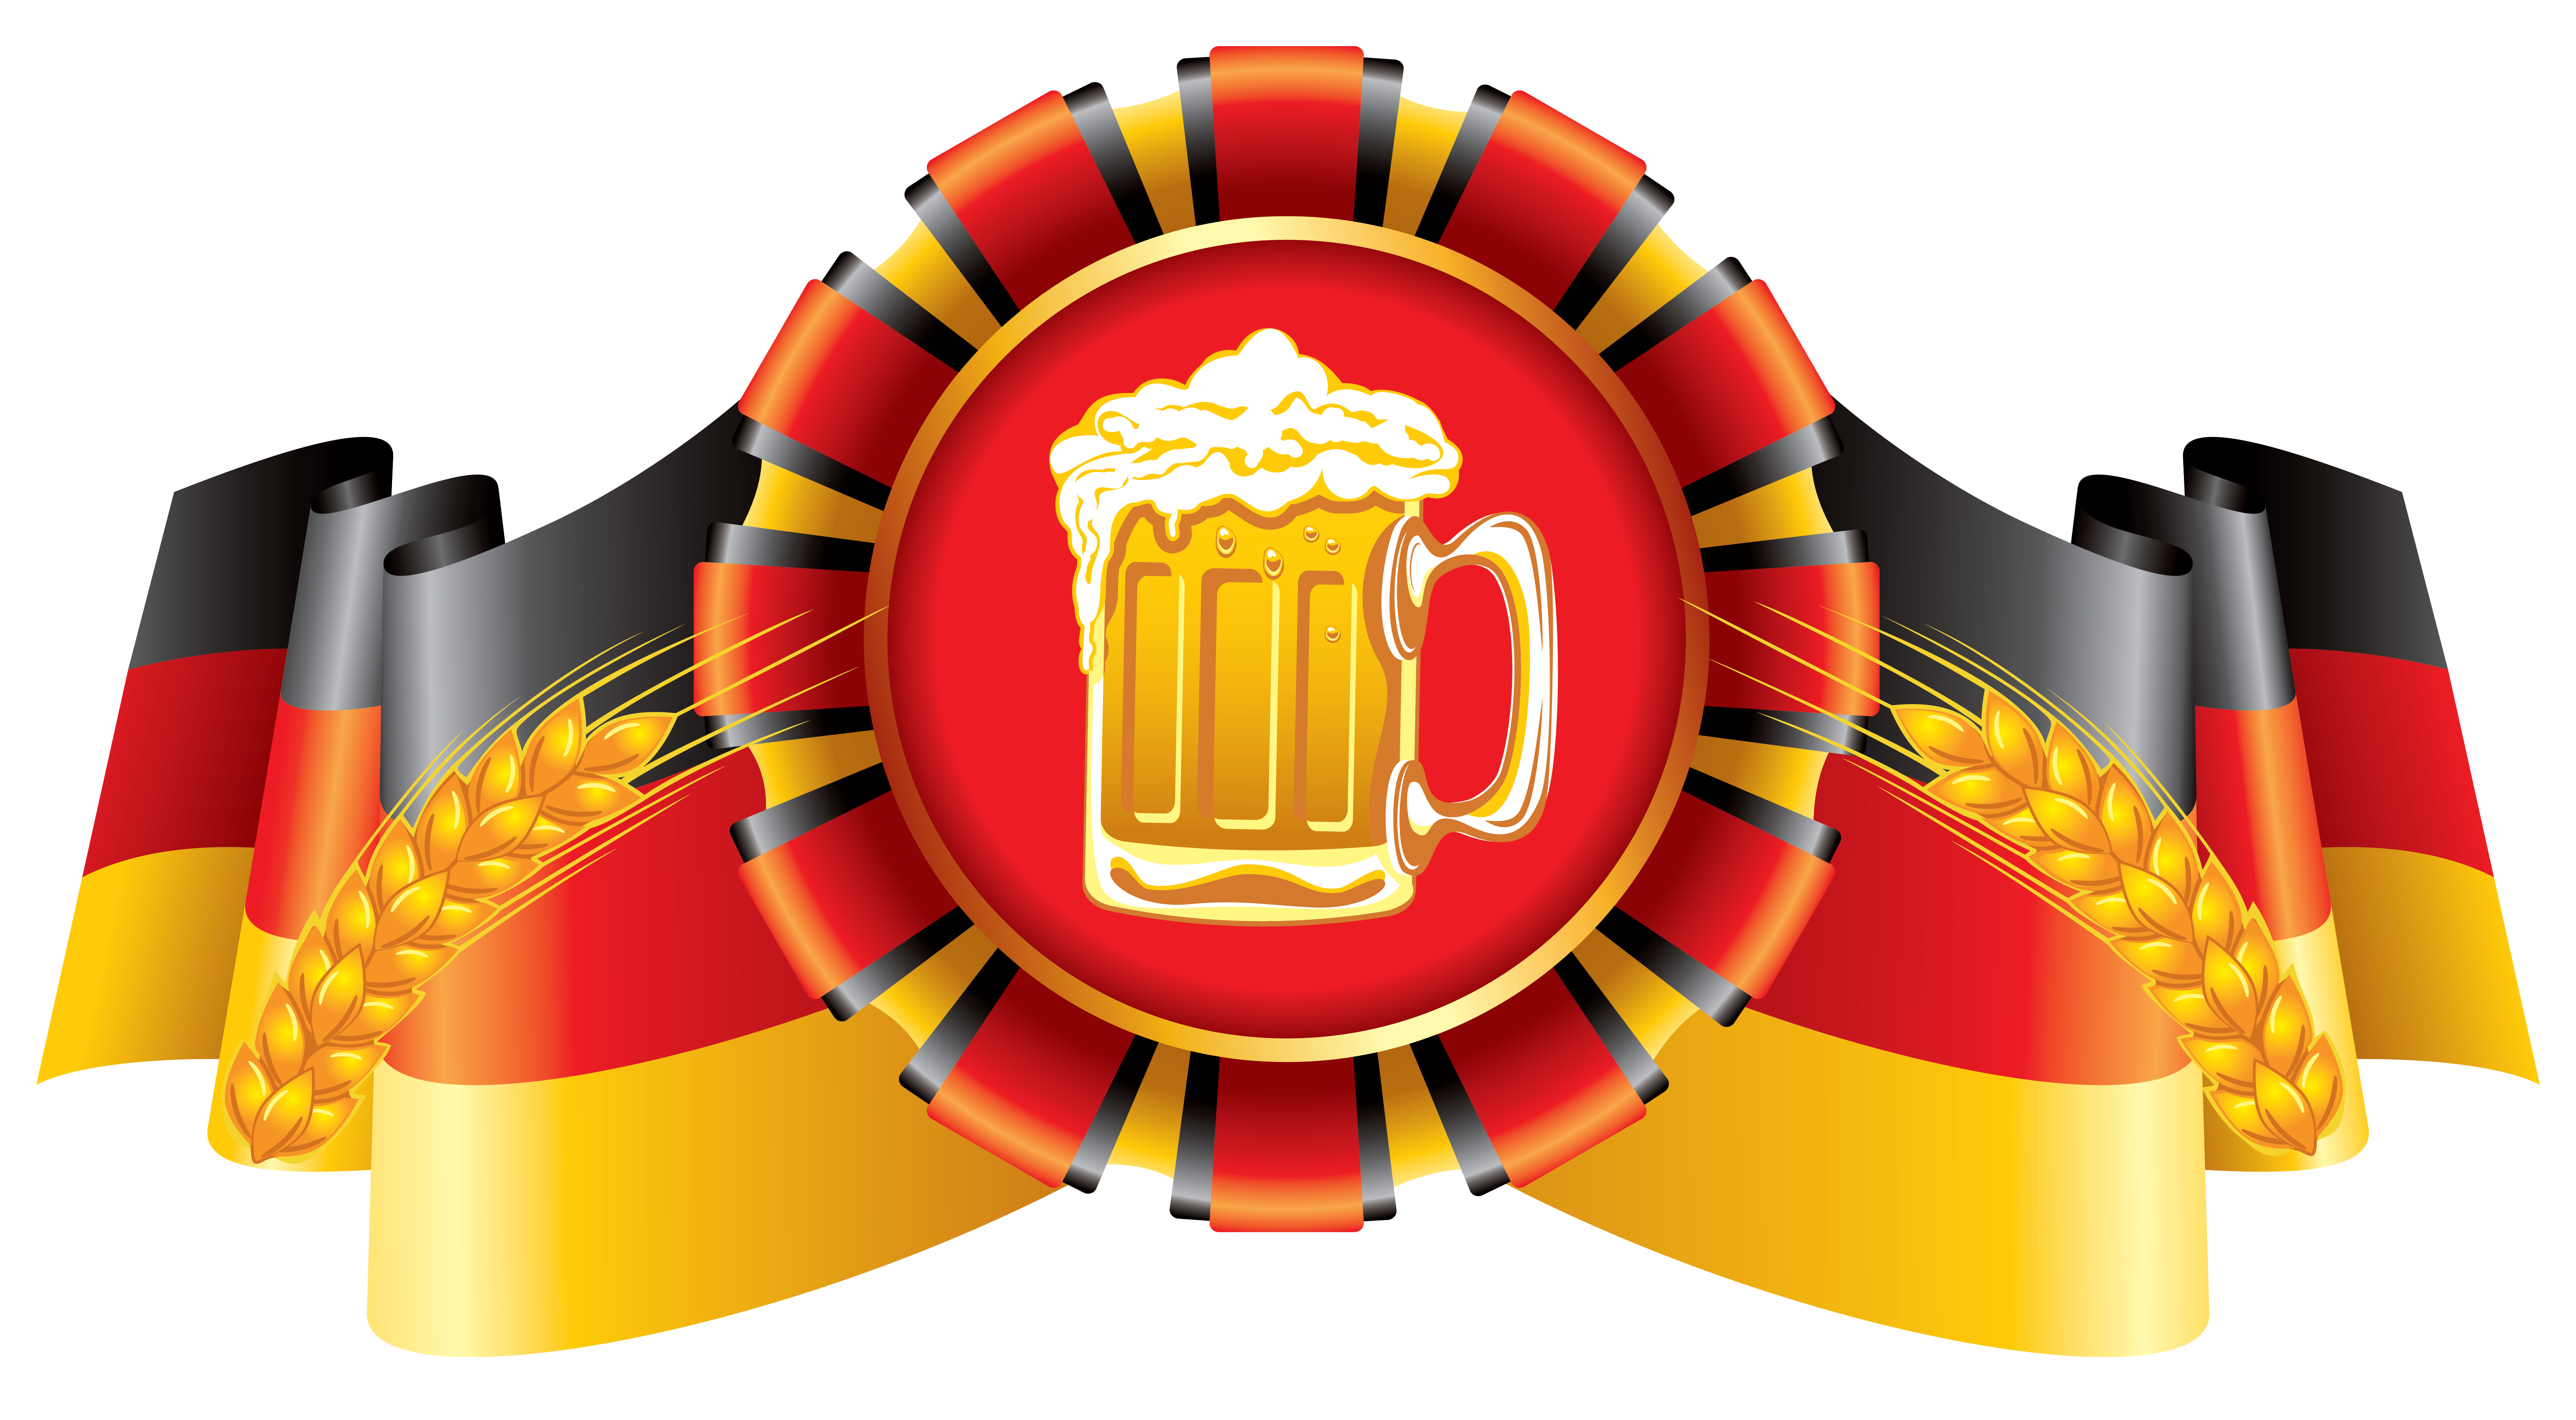 German beer logo clipart clip art Oktoberfest Decor German Flag and Beer PNG Clipart Image | Gallery ... clip art